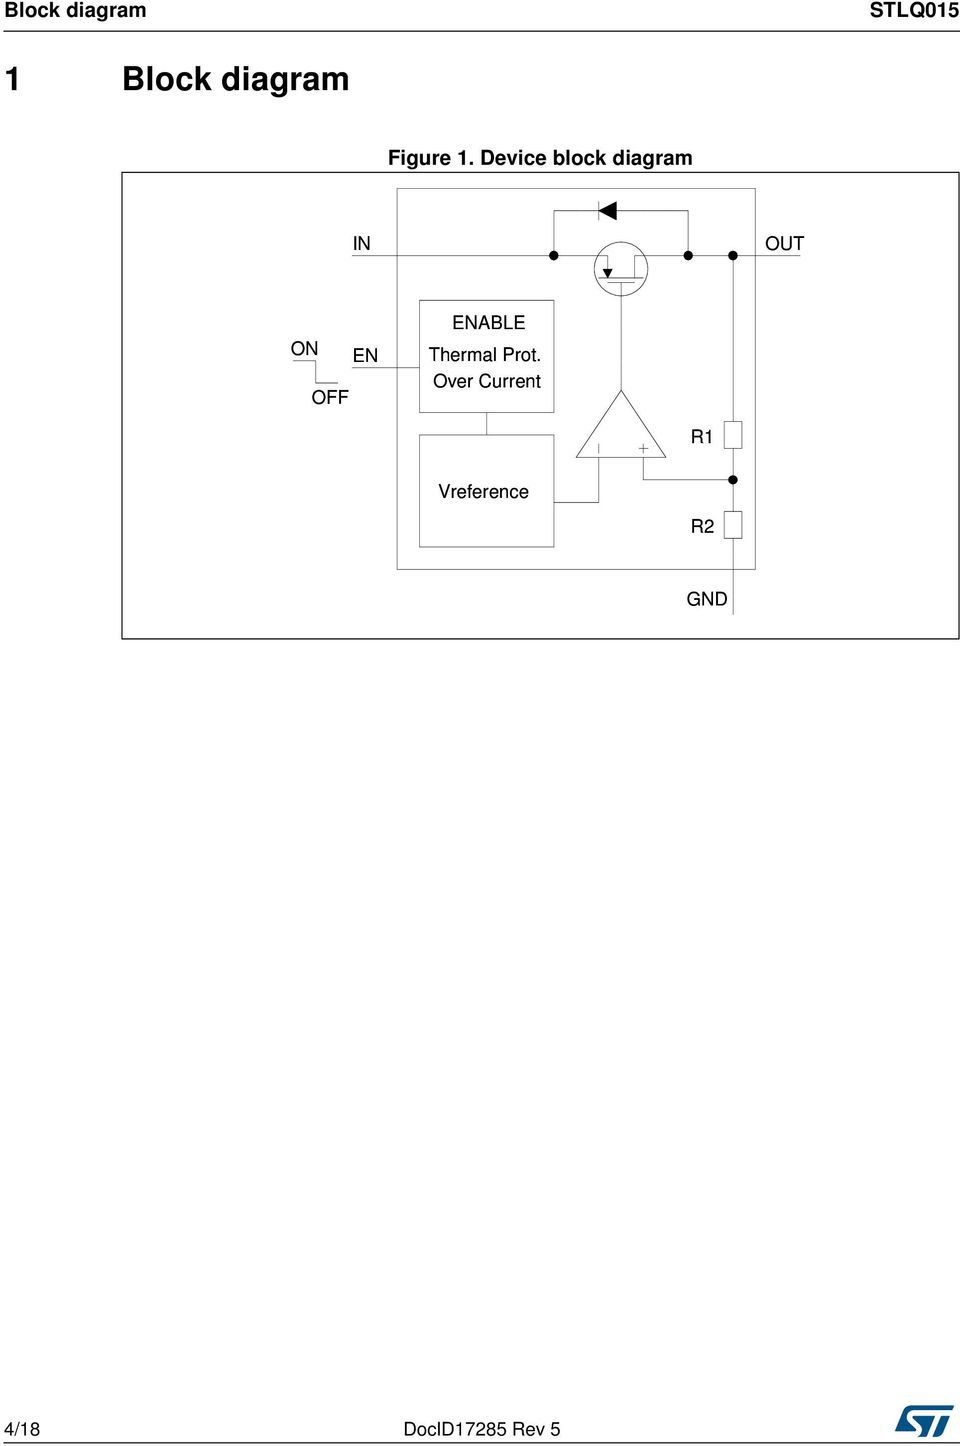 Device block diagram IN OUT ON EN OFF